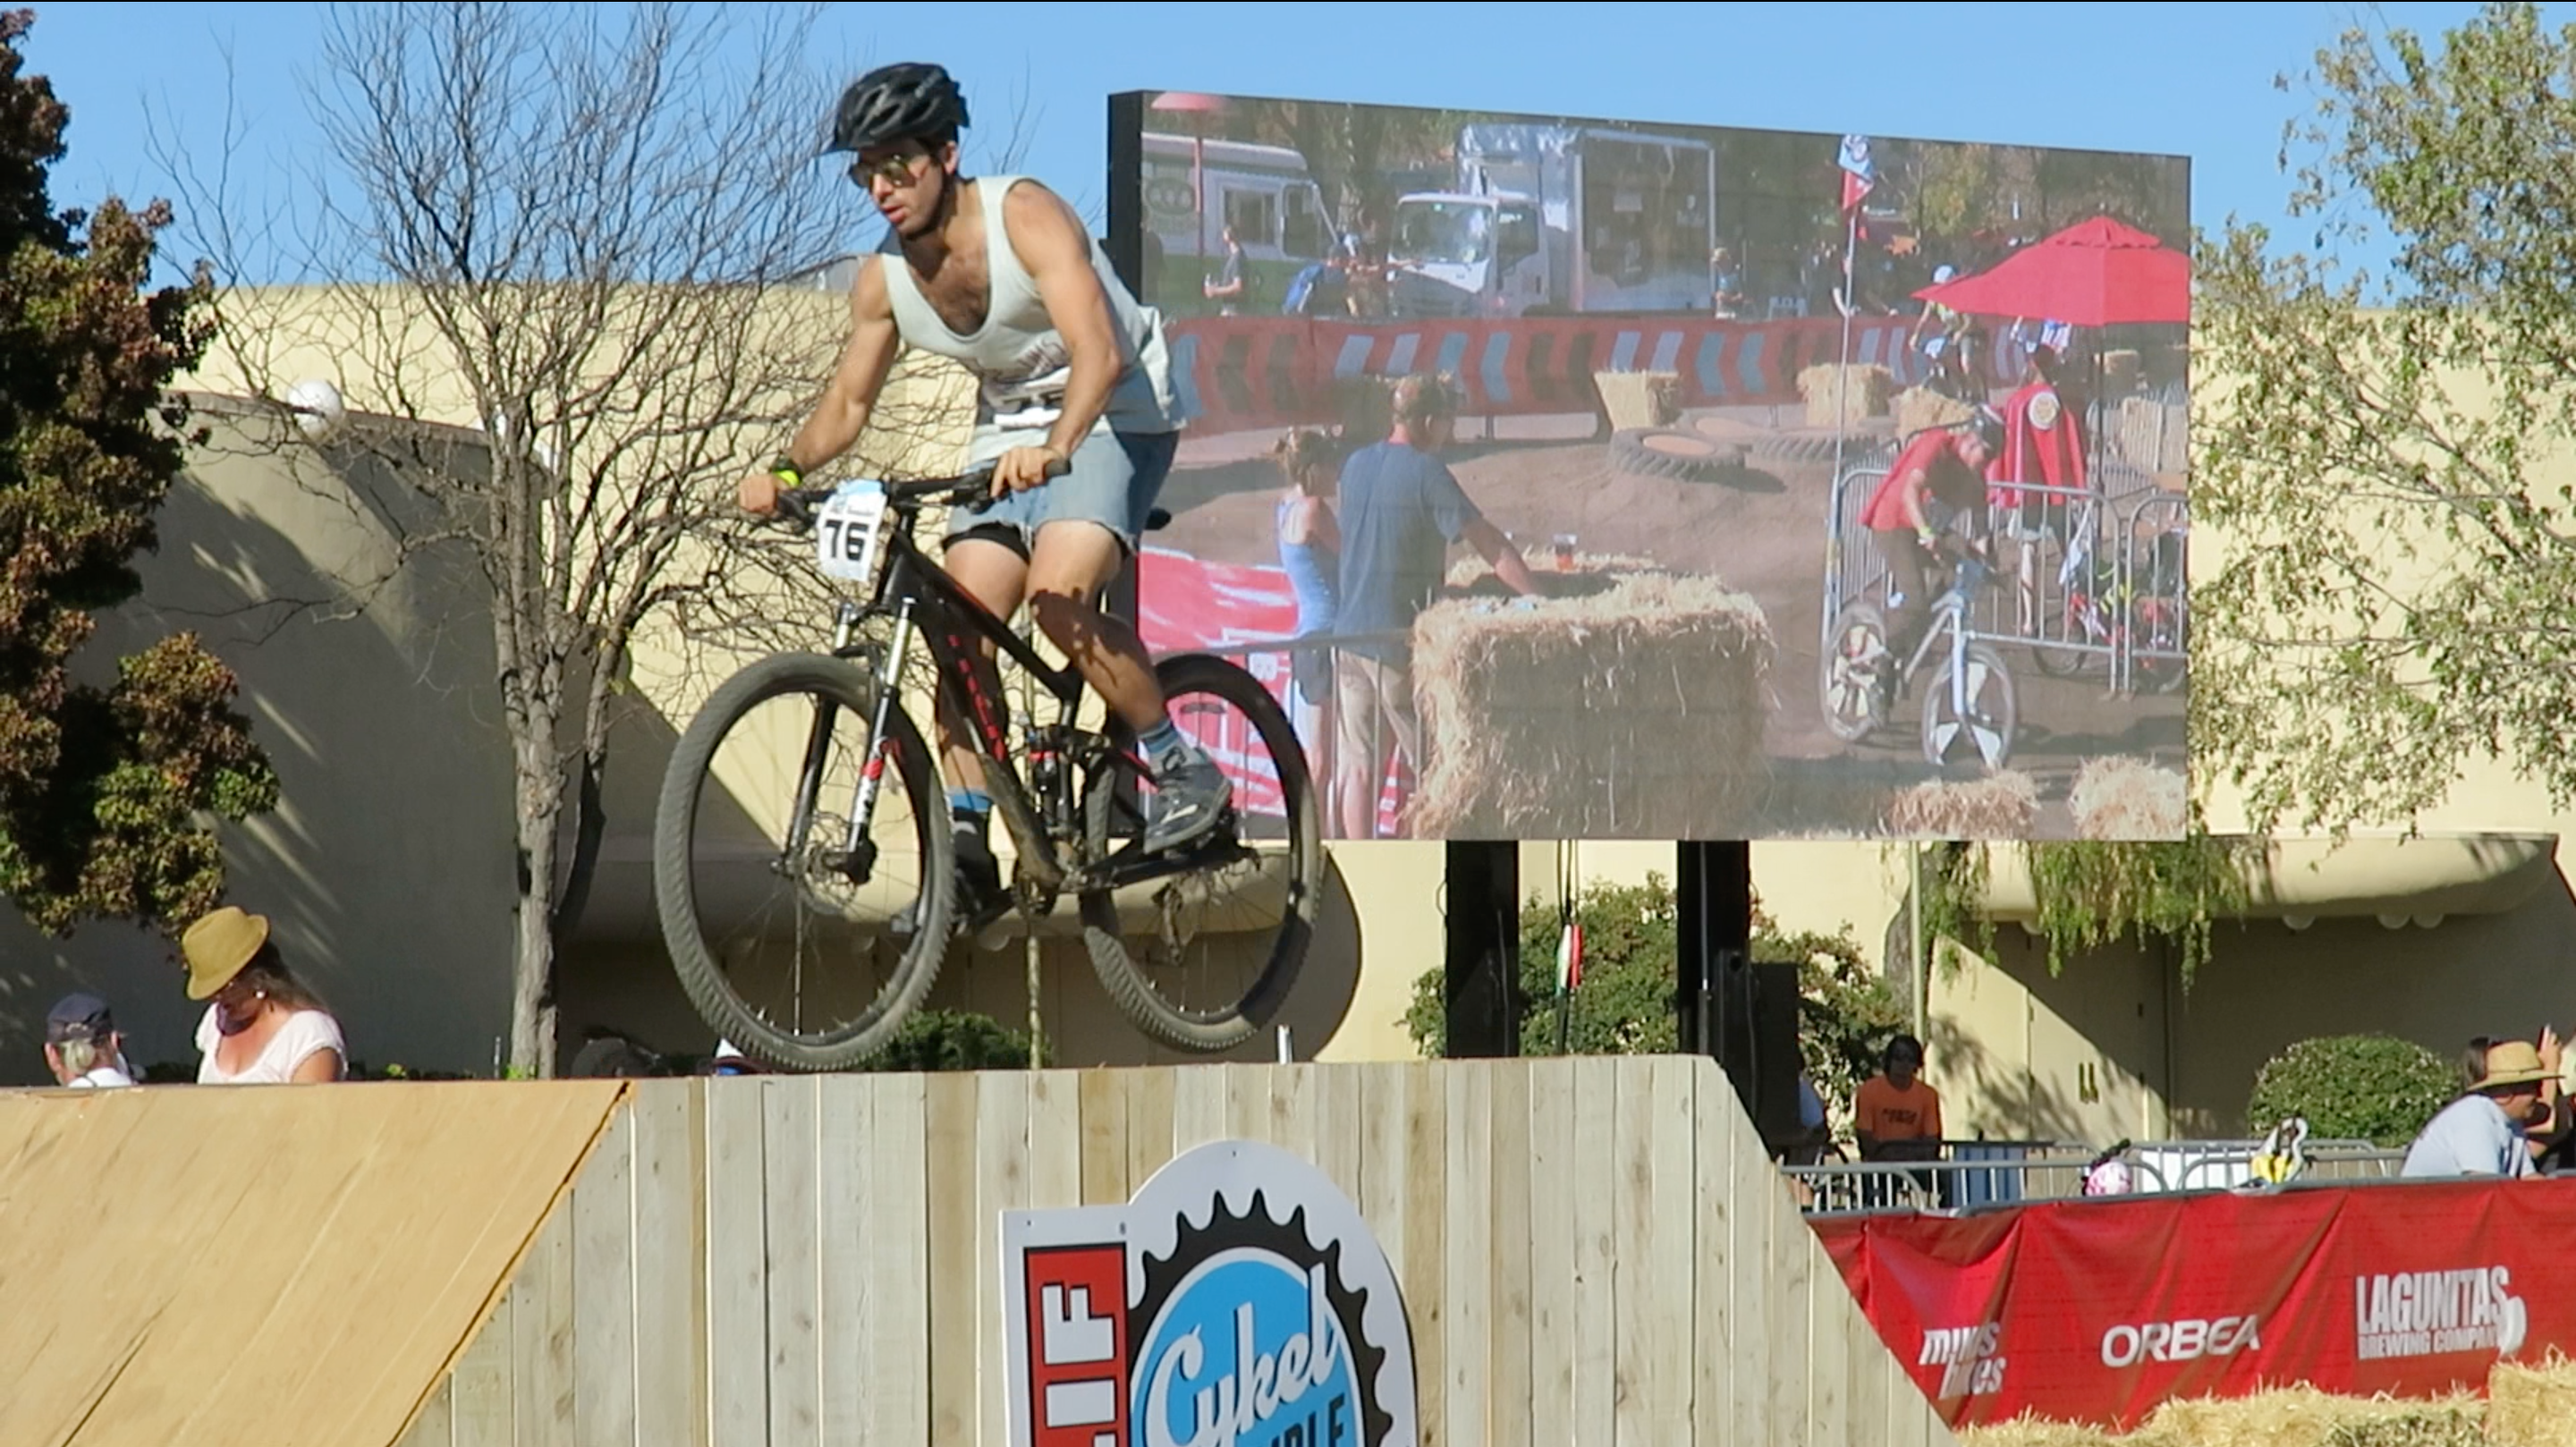 Jumbovision mobile LED screen at Cykel Scramble cycling event